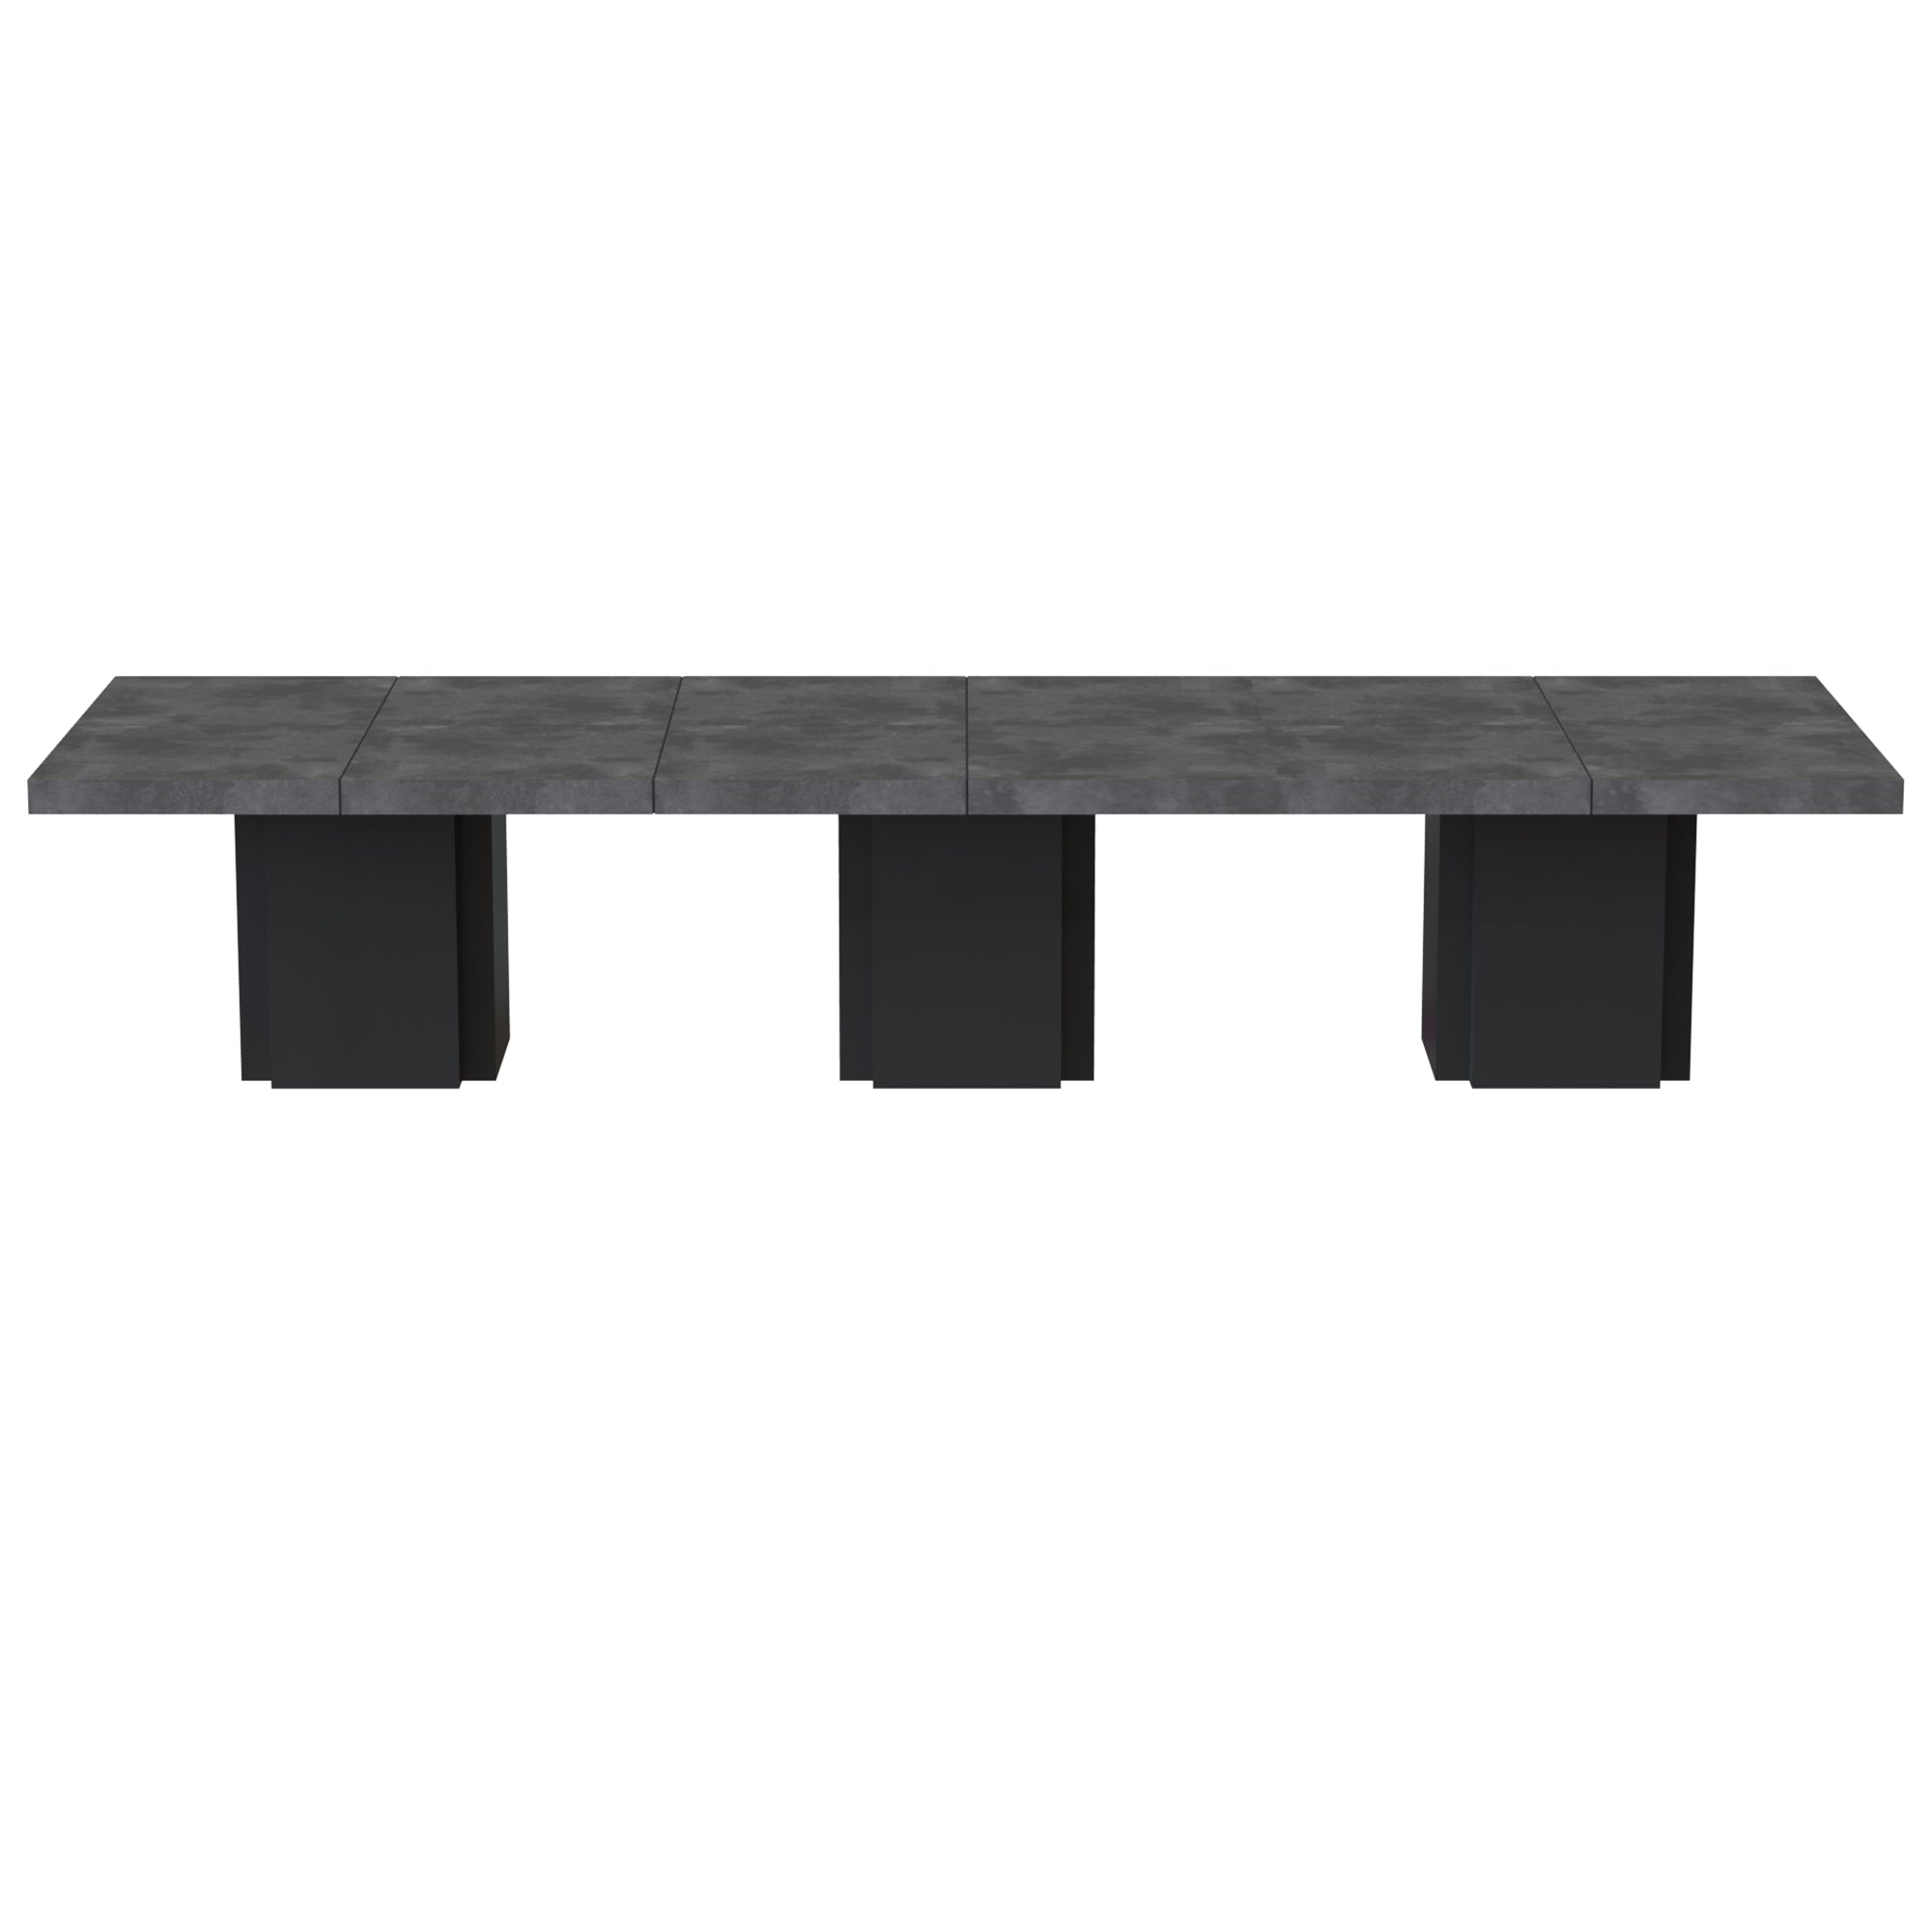 Dusk 51 Dining Table - Set of Three